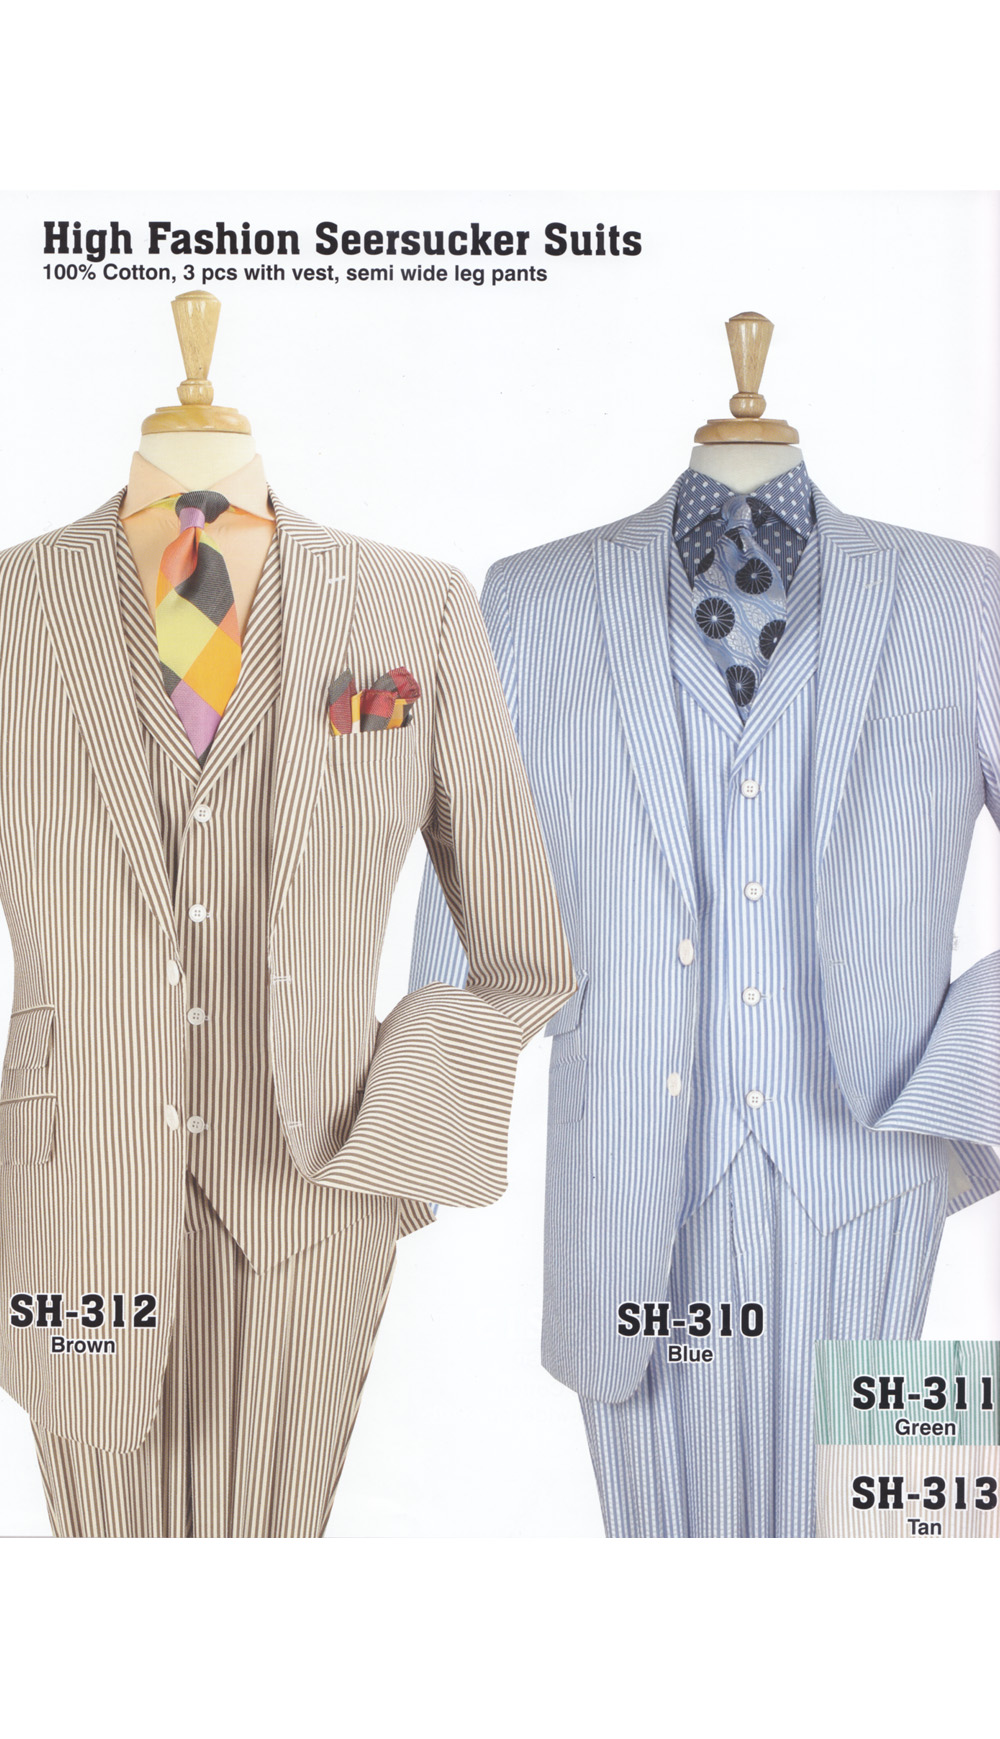 High Fashion Men Suits SH-312